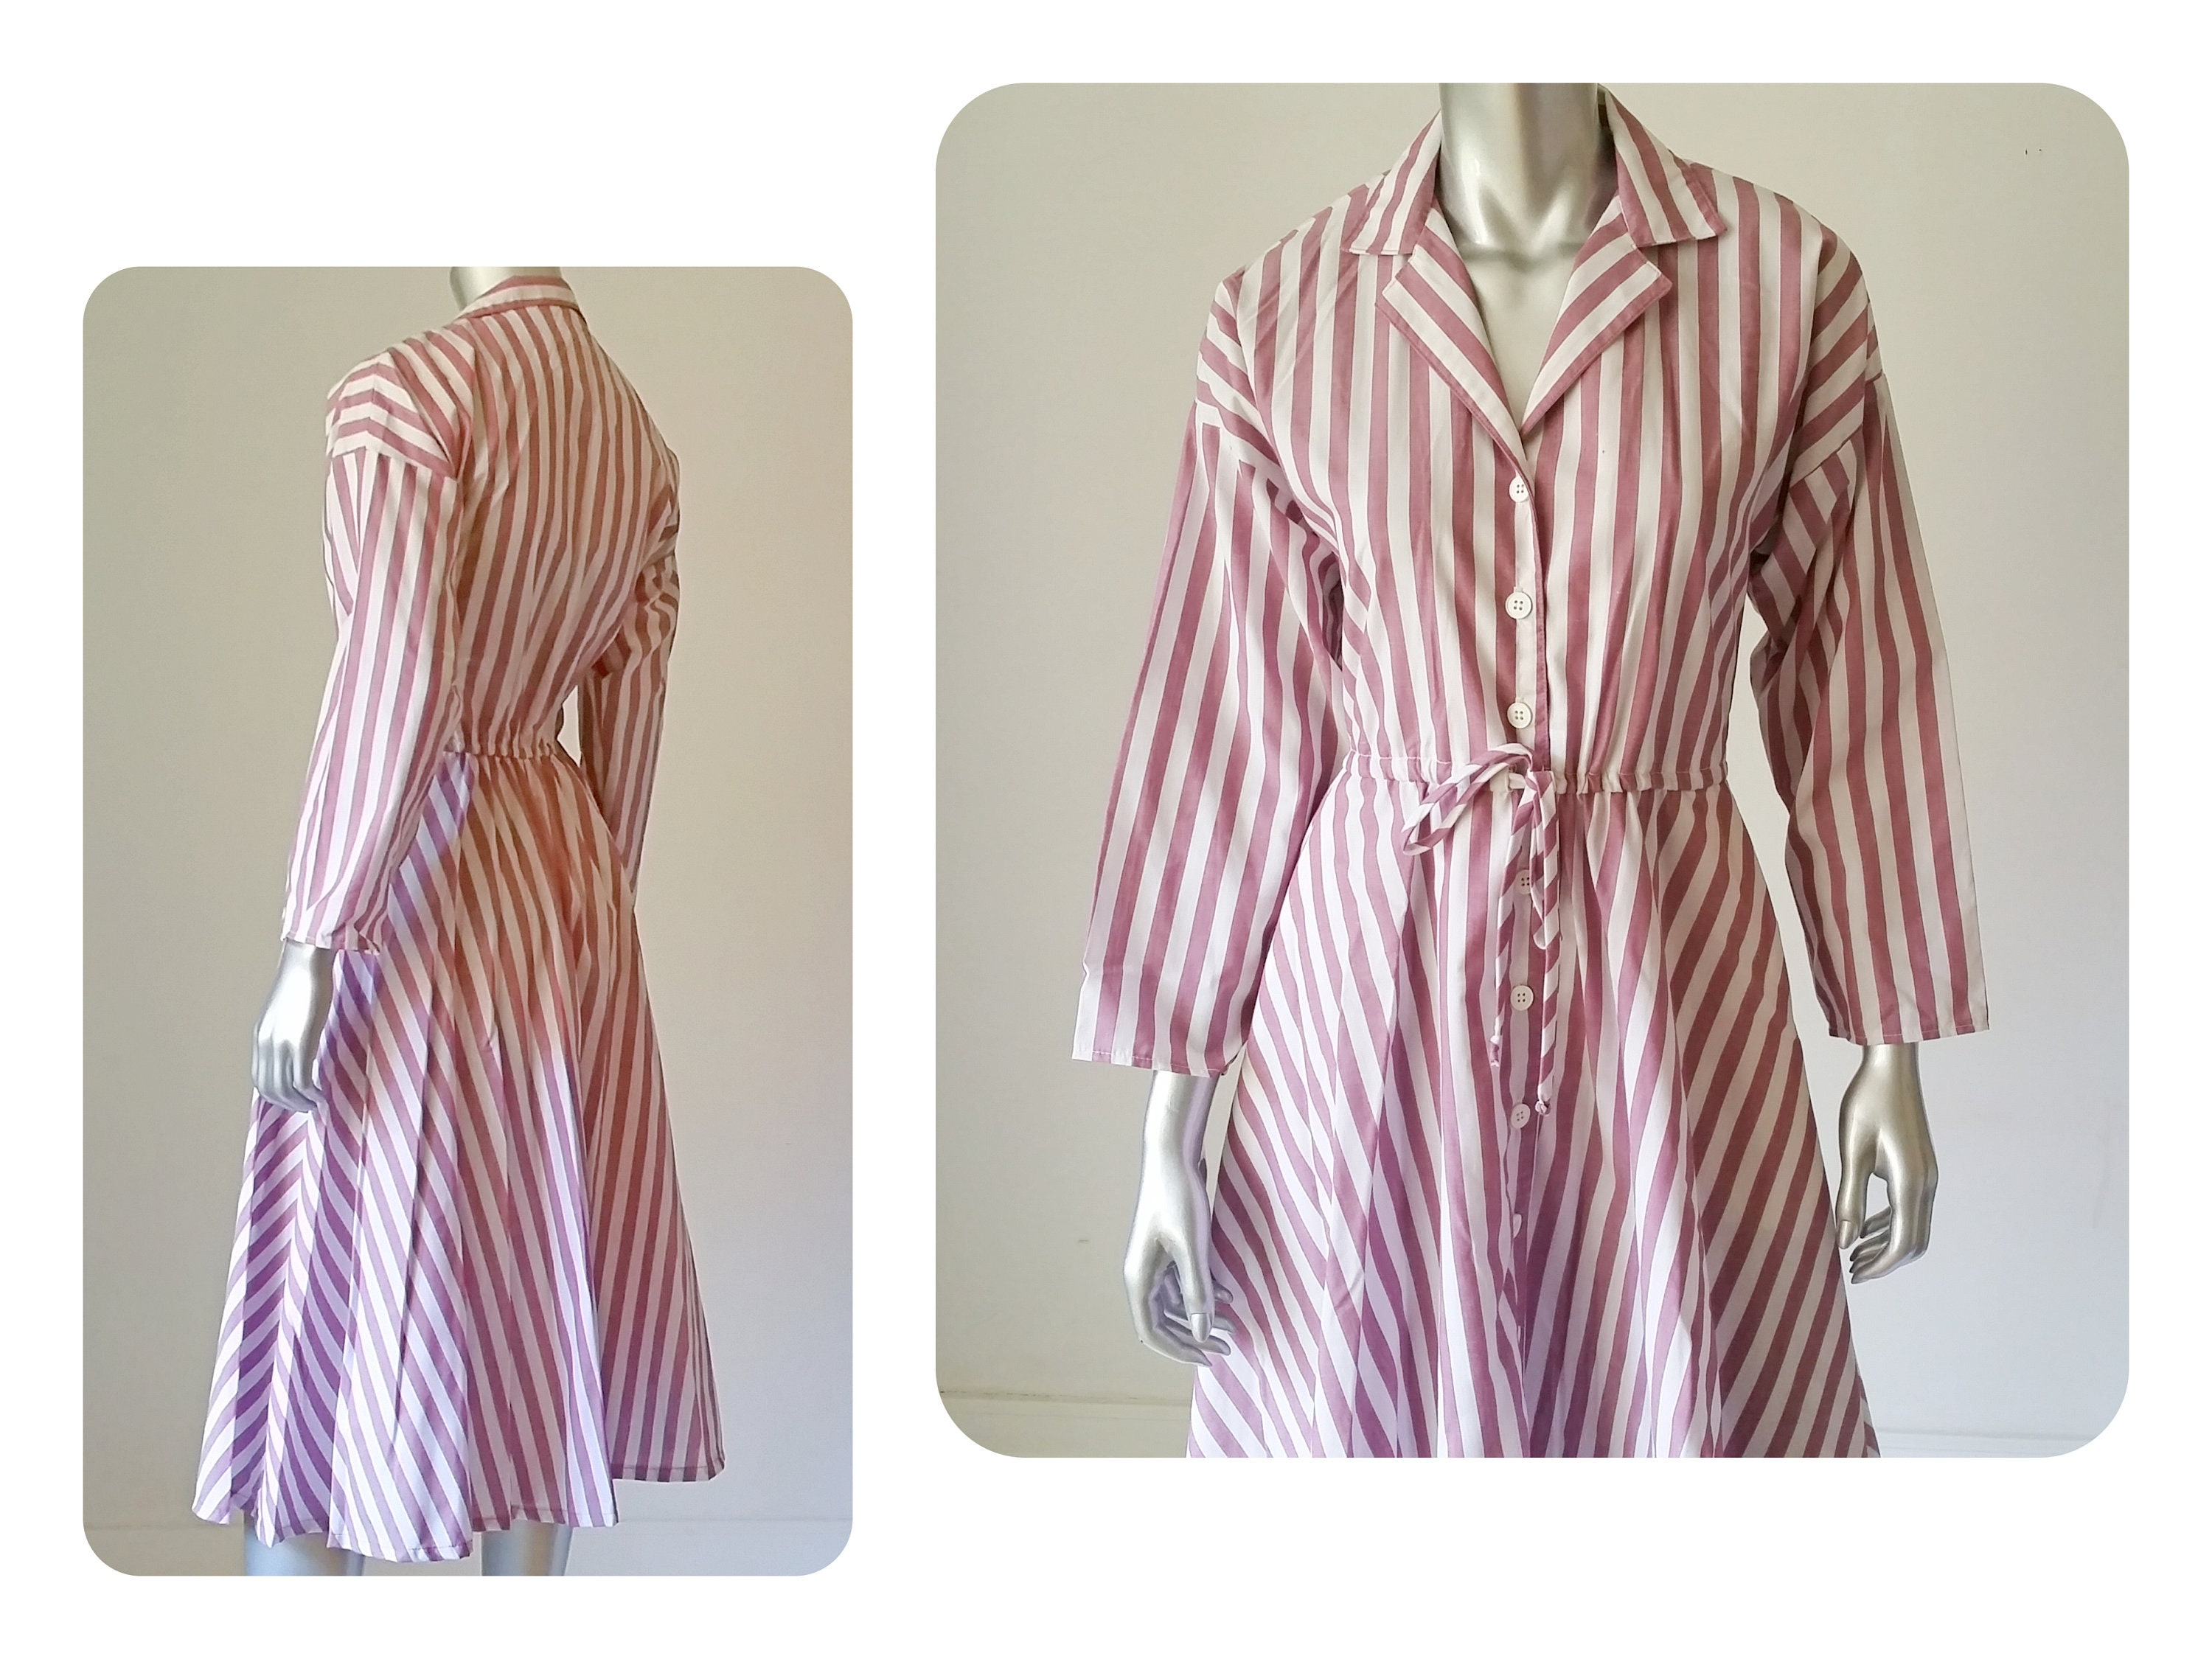 70s Vintage Dress Striped Cotton Shirt Dress Fit And Flare Etsy